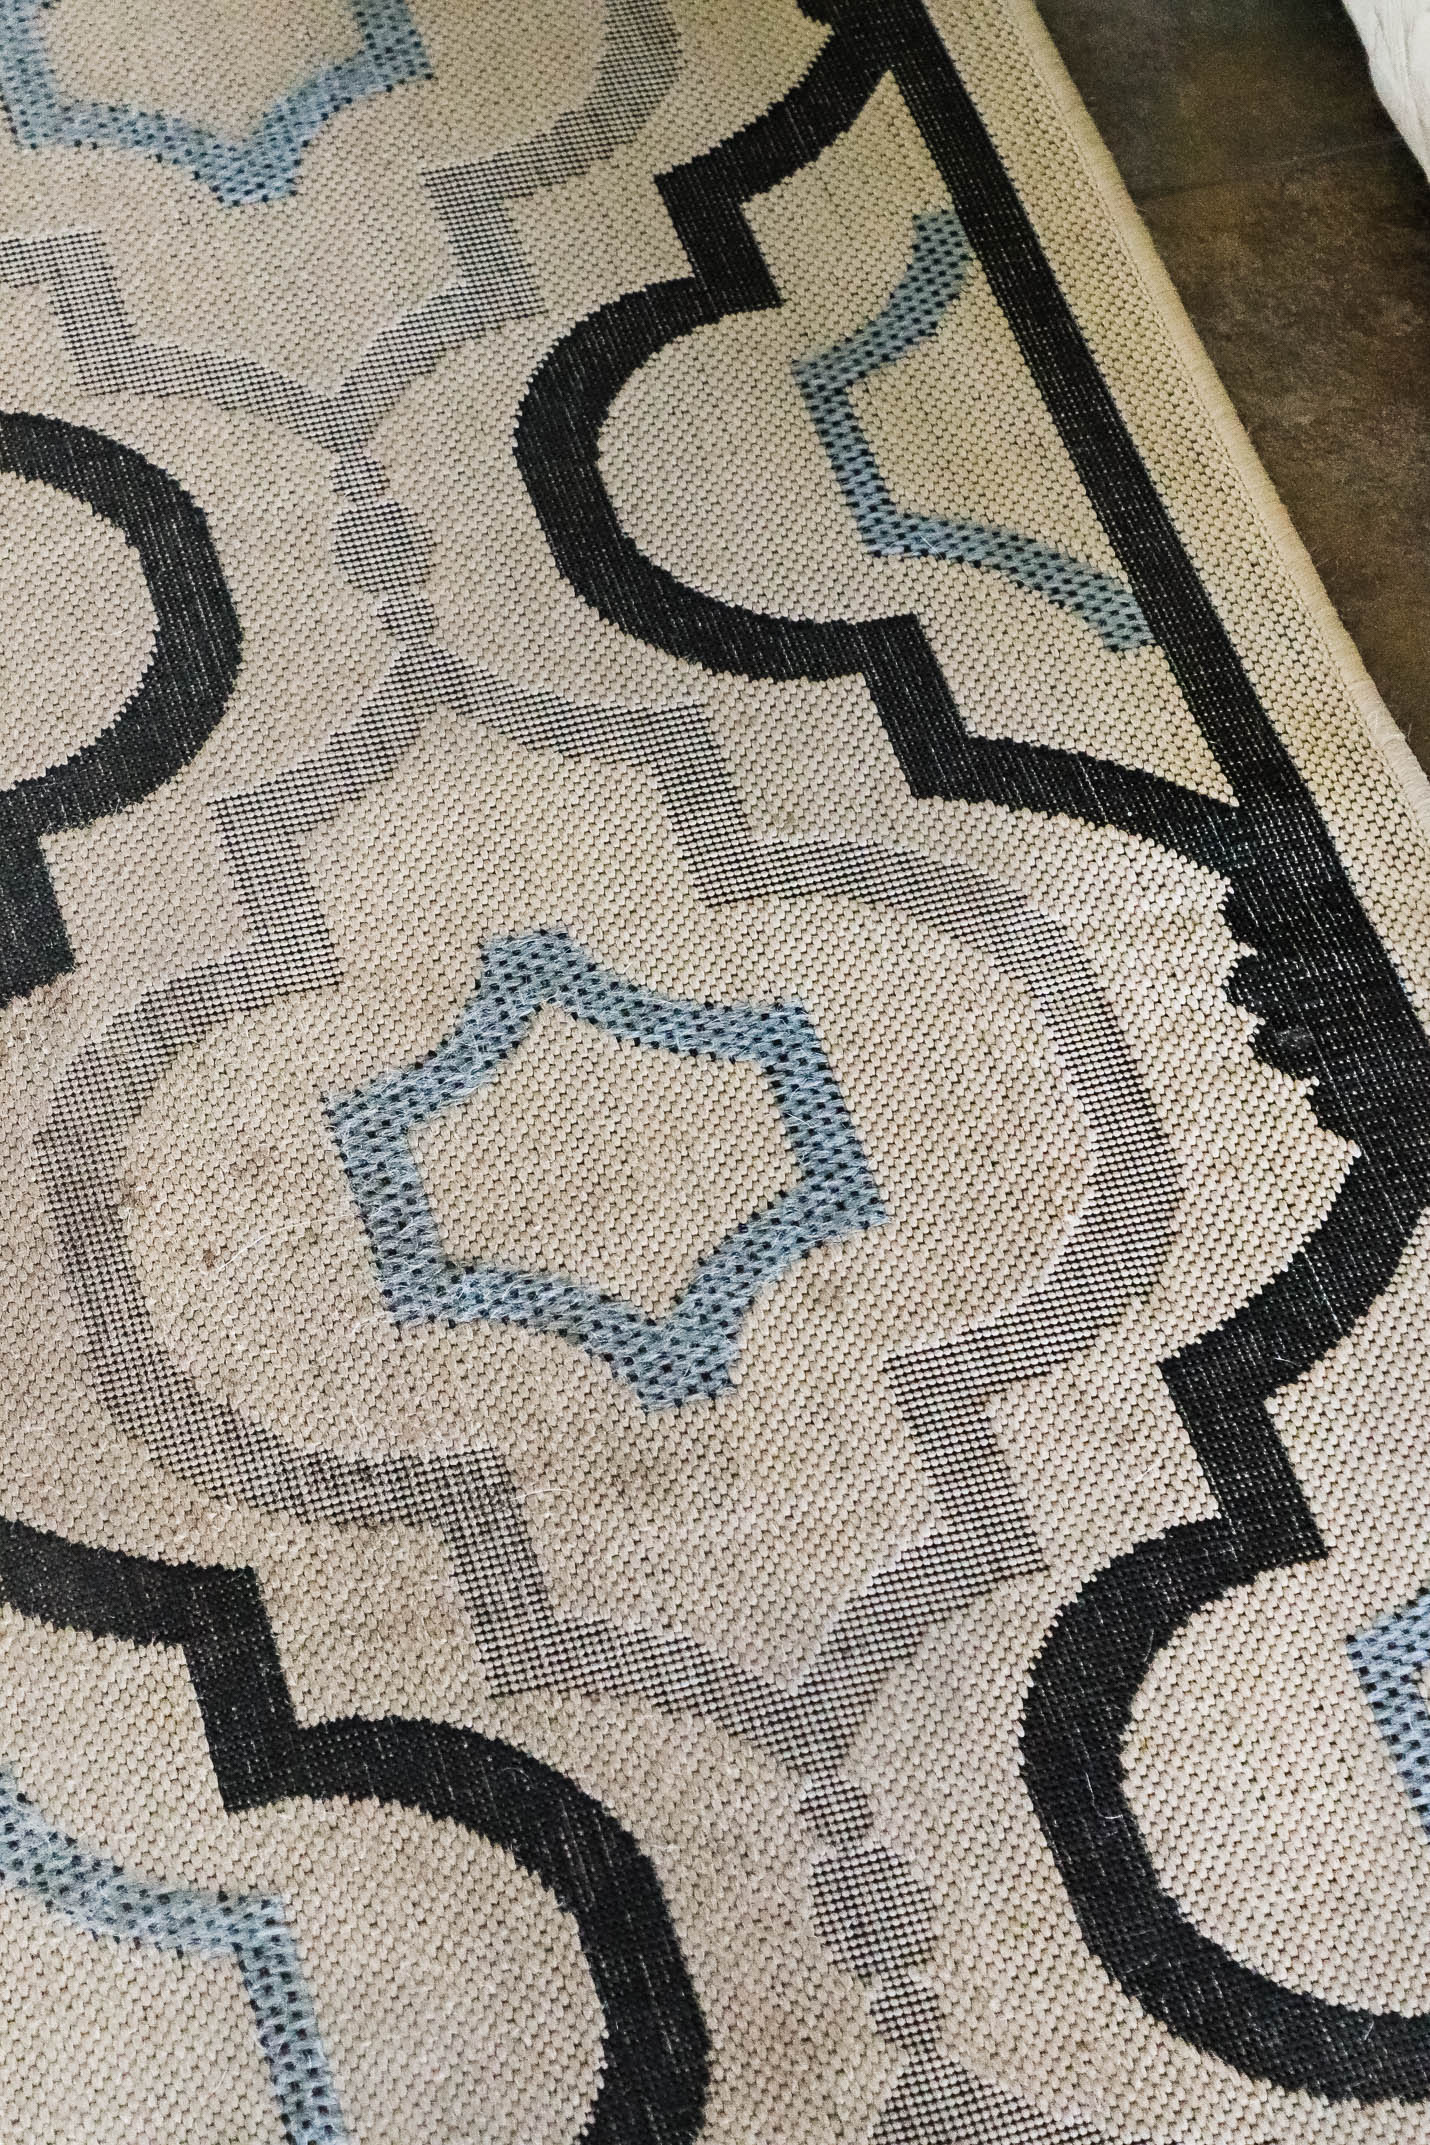 Indoor Outdoor Rug How to clean